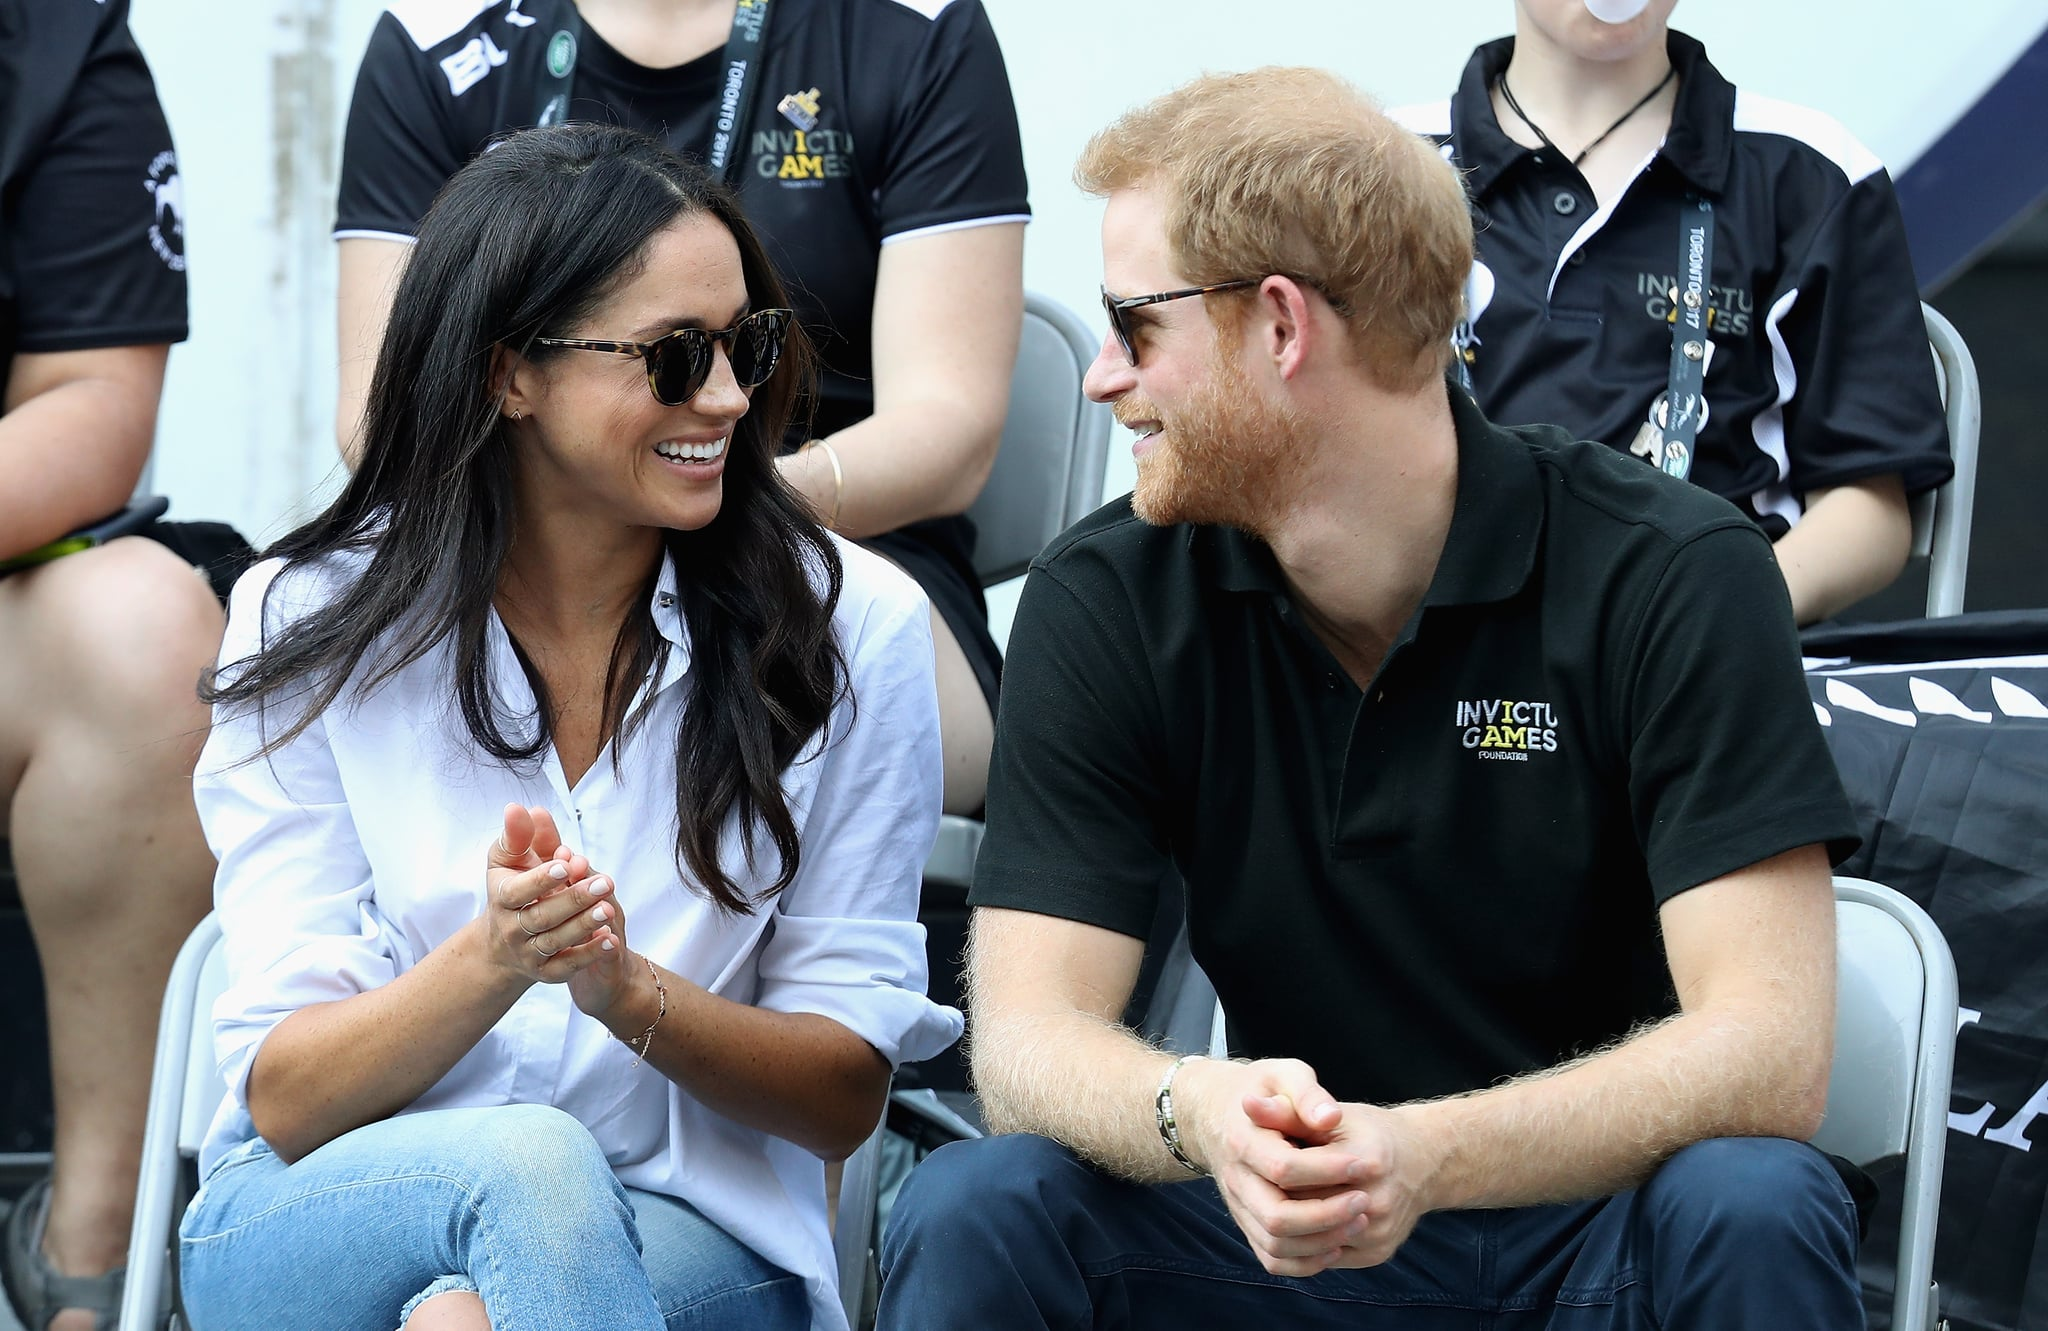 Prince Harry and Meghan Markle to announce ENGAGEMENT in special TV interview